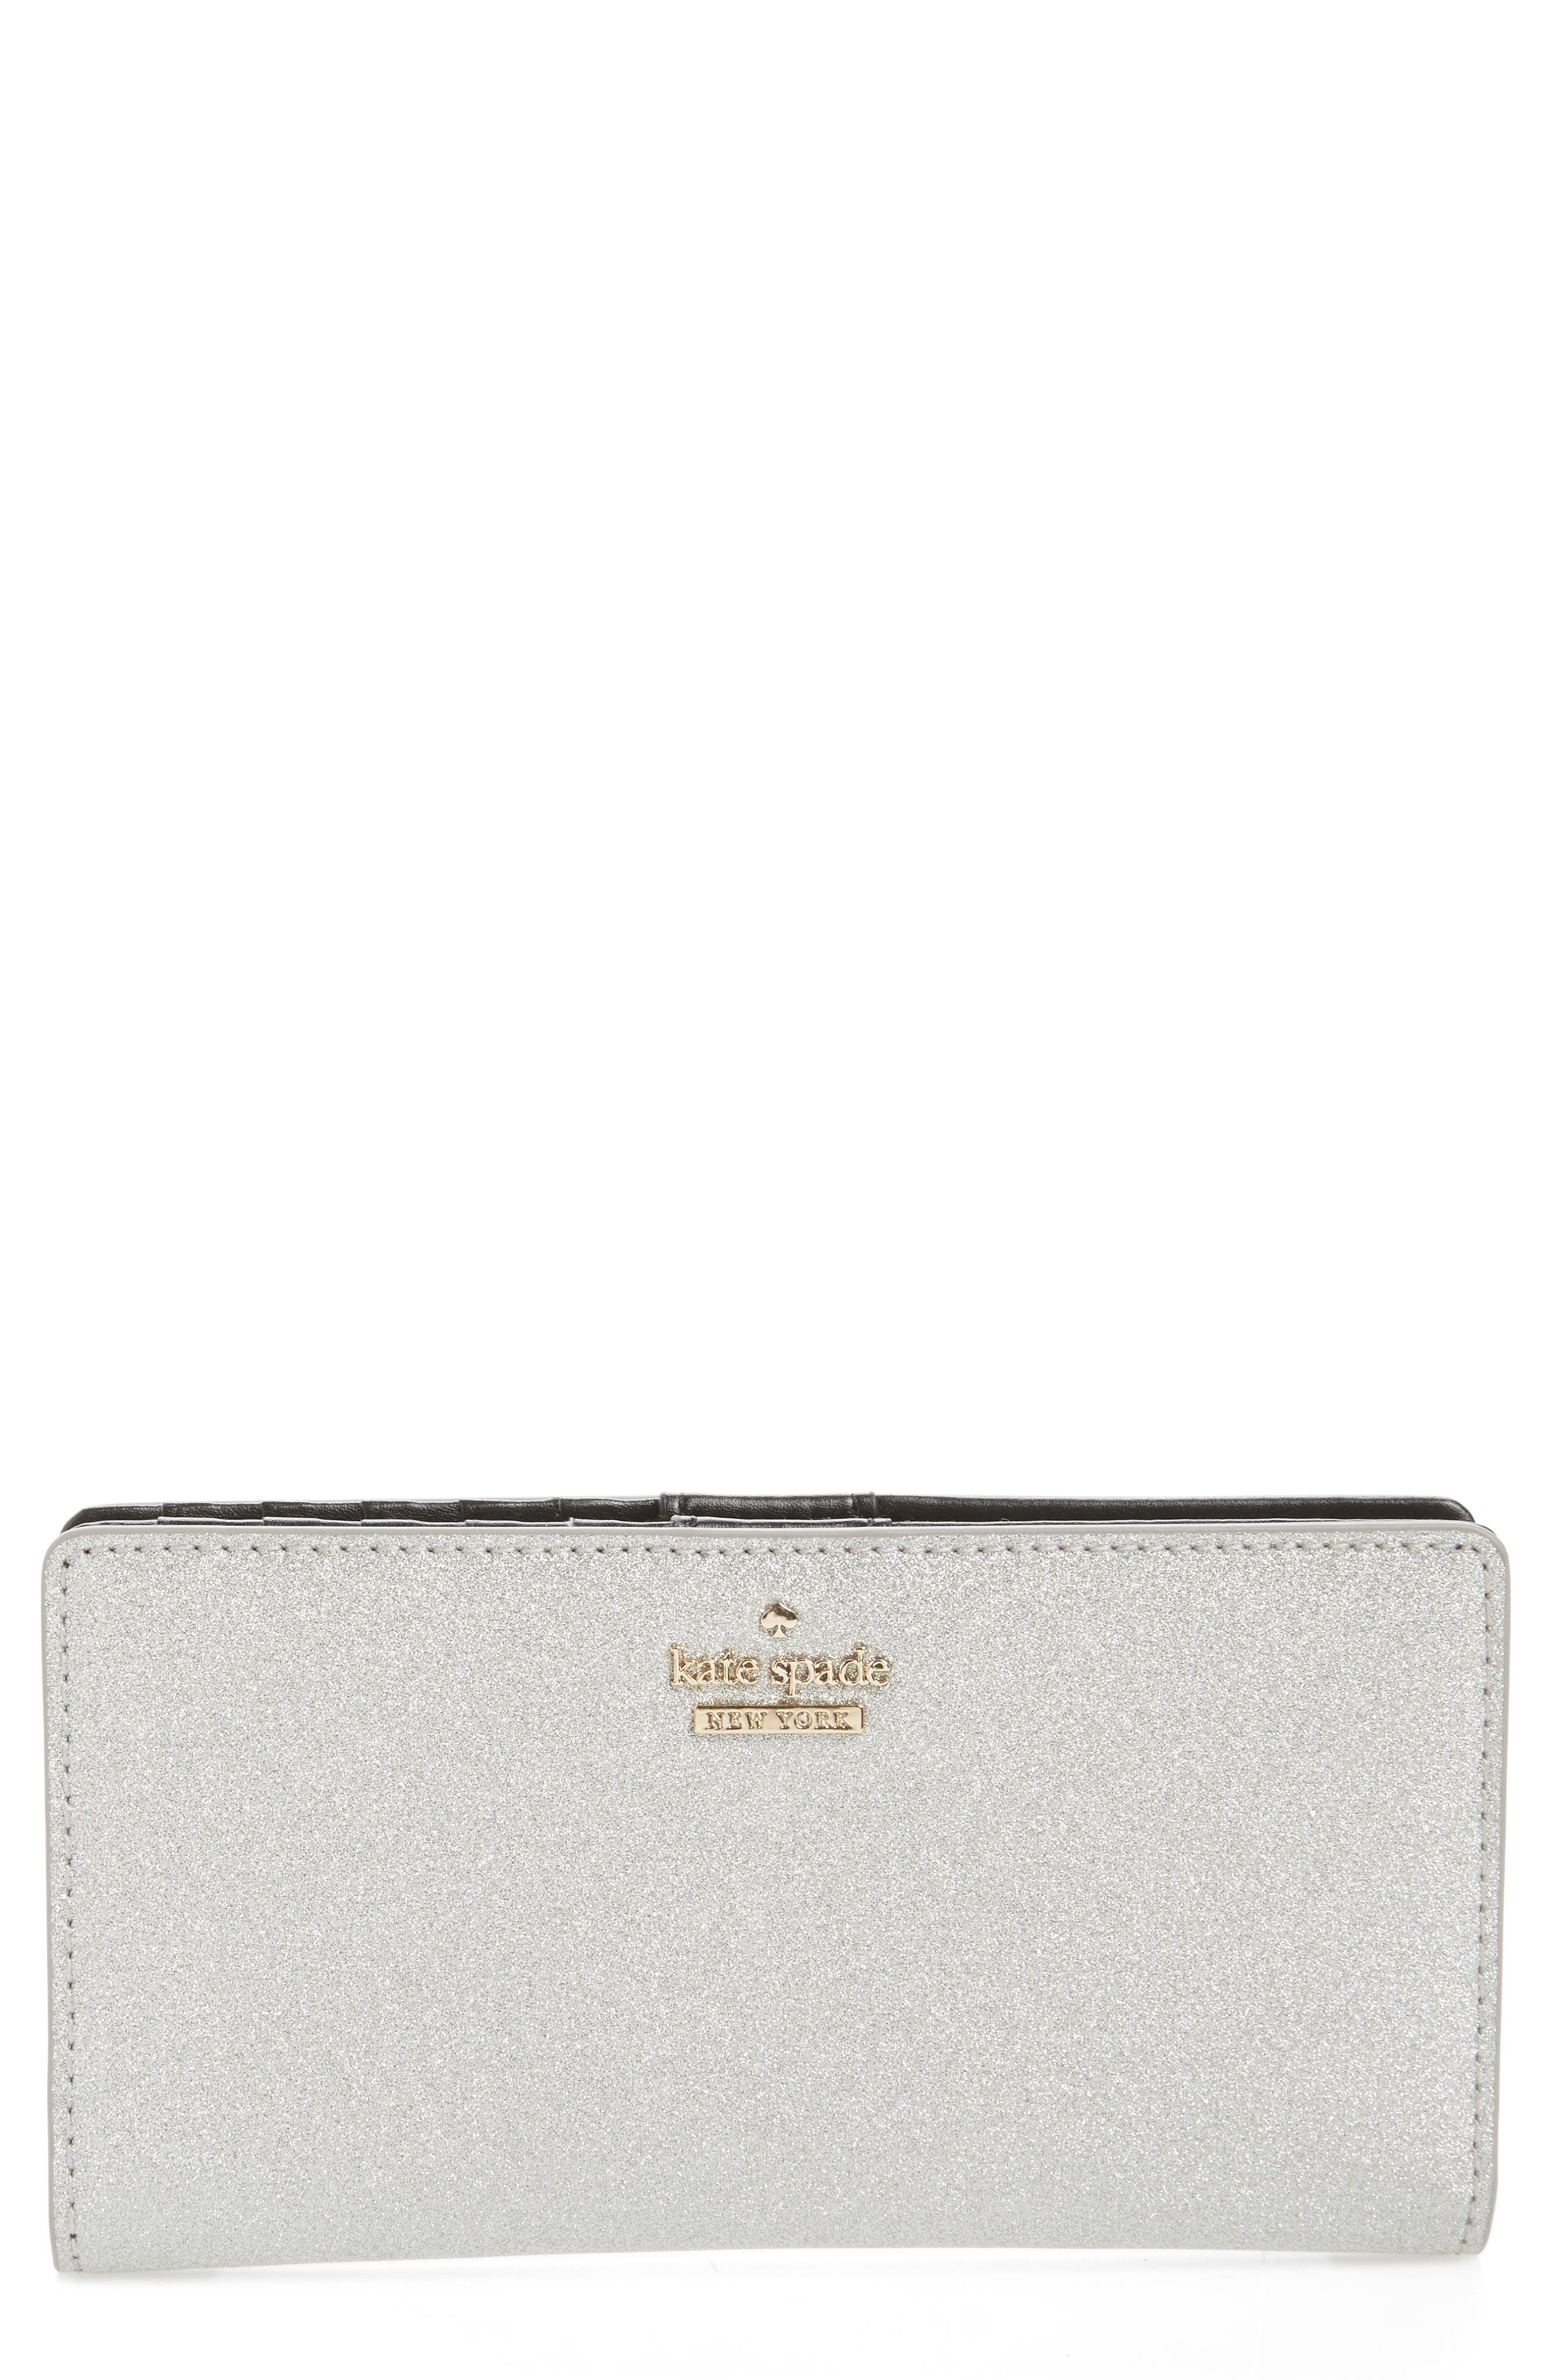 kate spade new york burgess court - stacy wallet